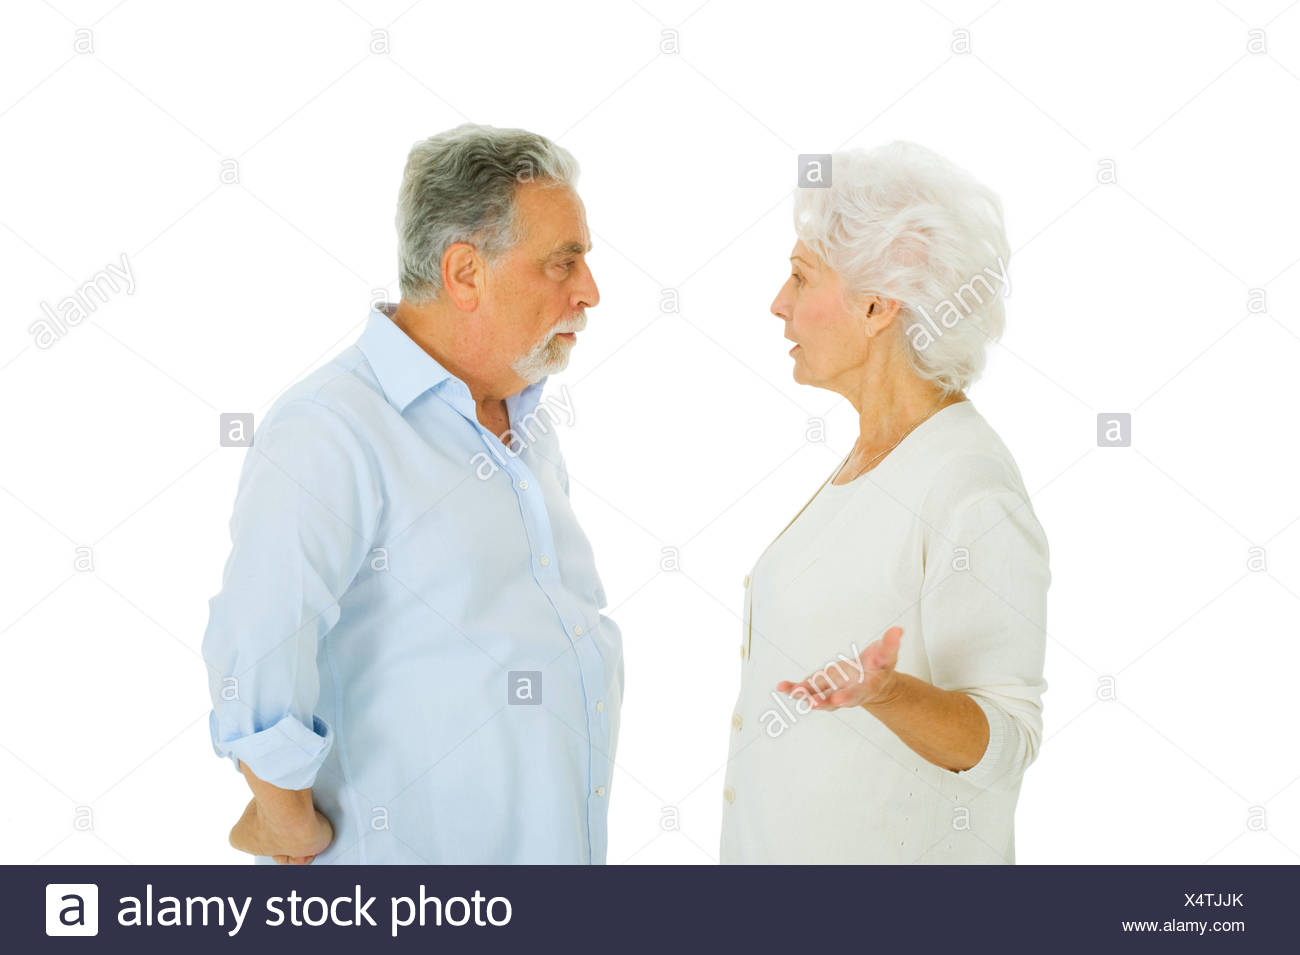 elderly couple disagreement - Stock Image